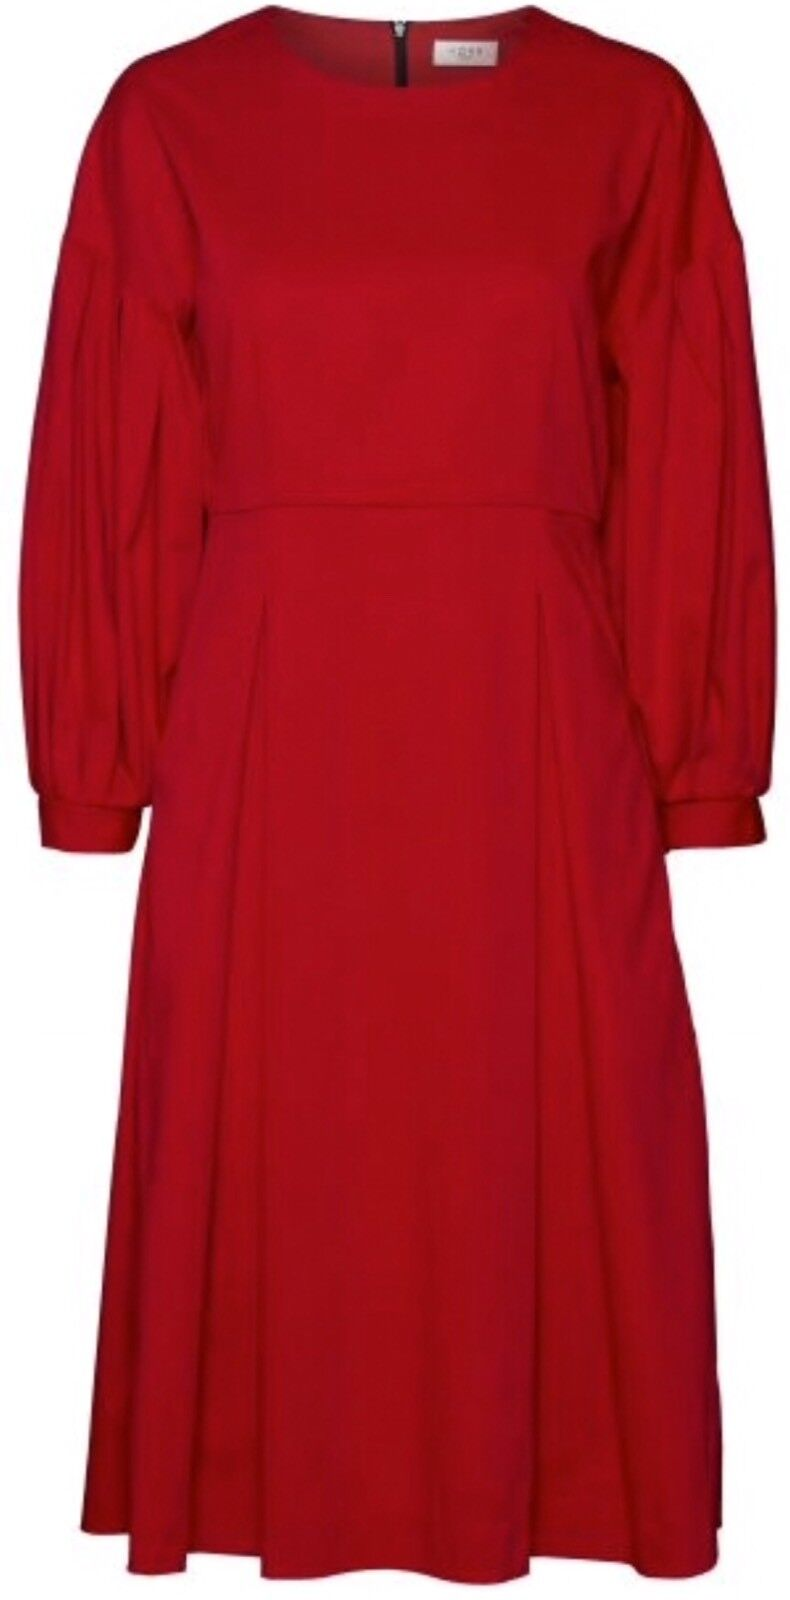 Norr Maggie Dress Red Size 40L